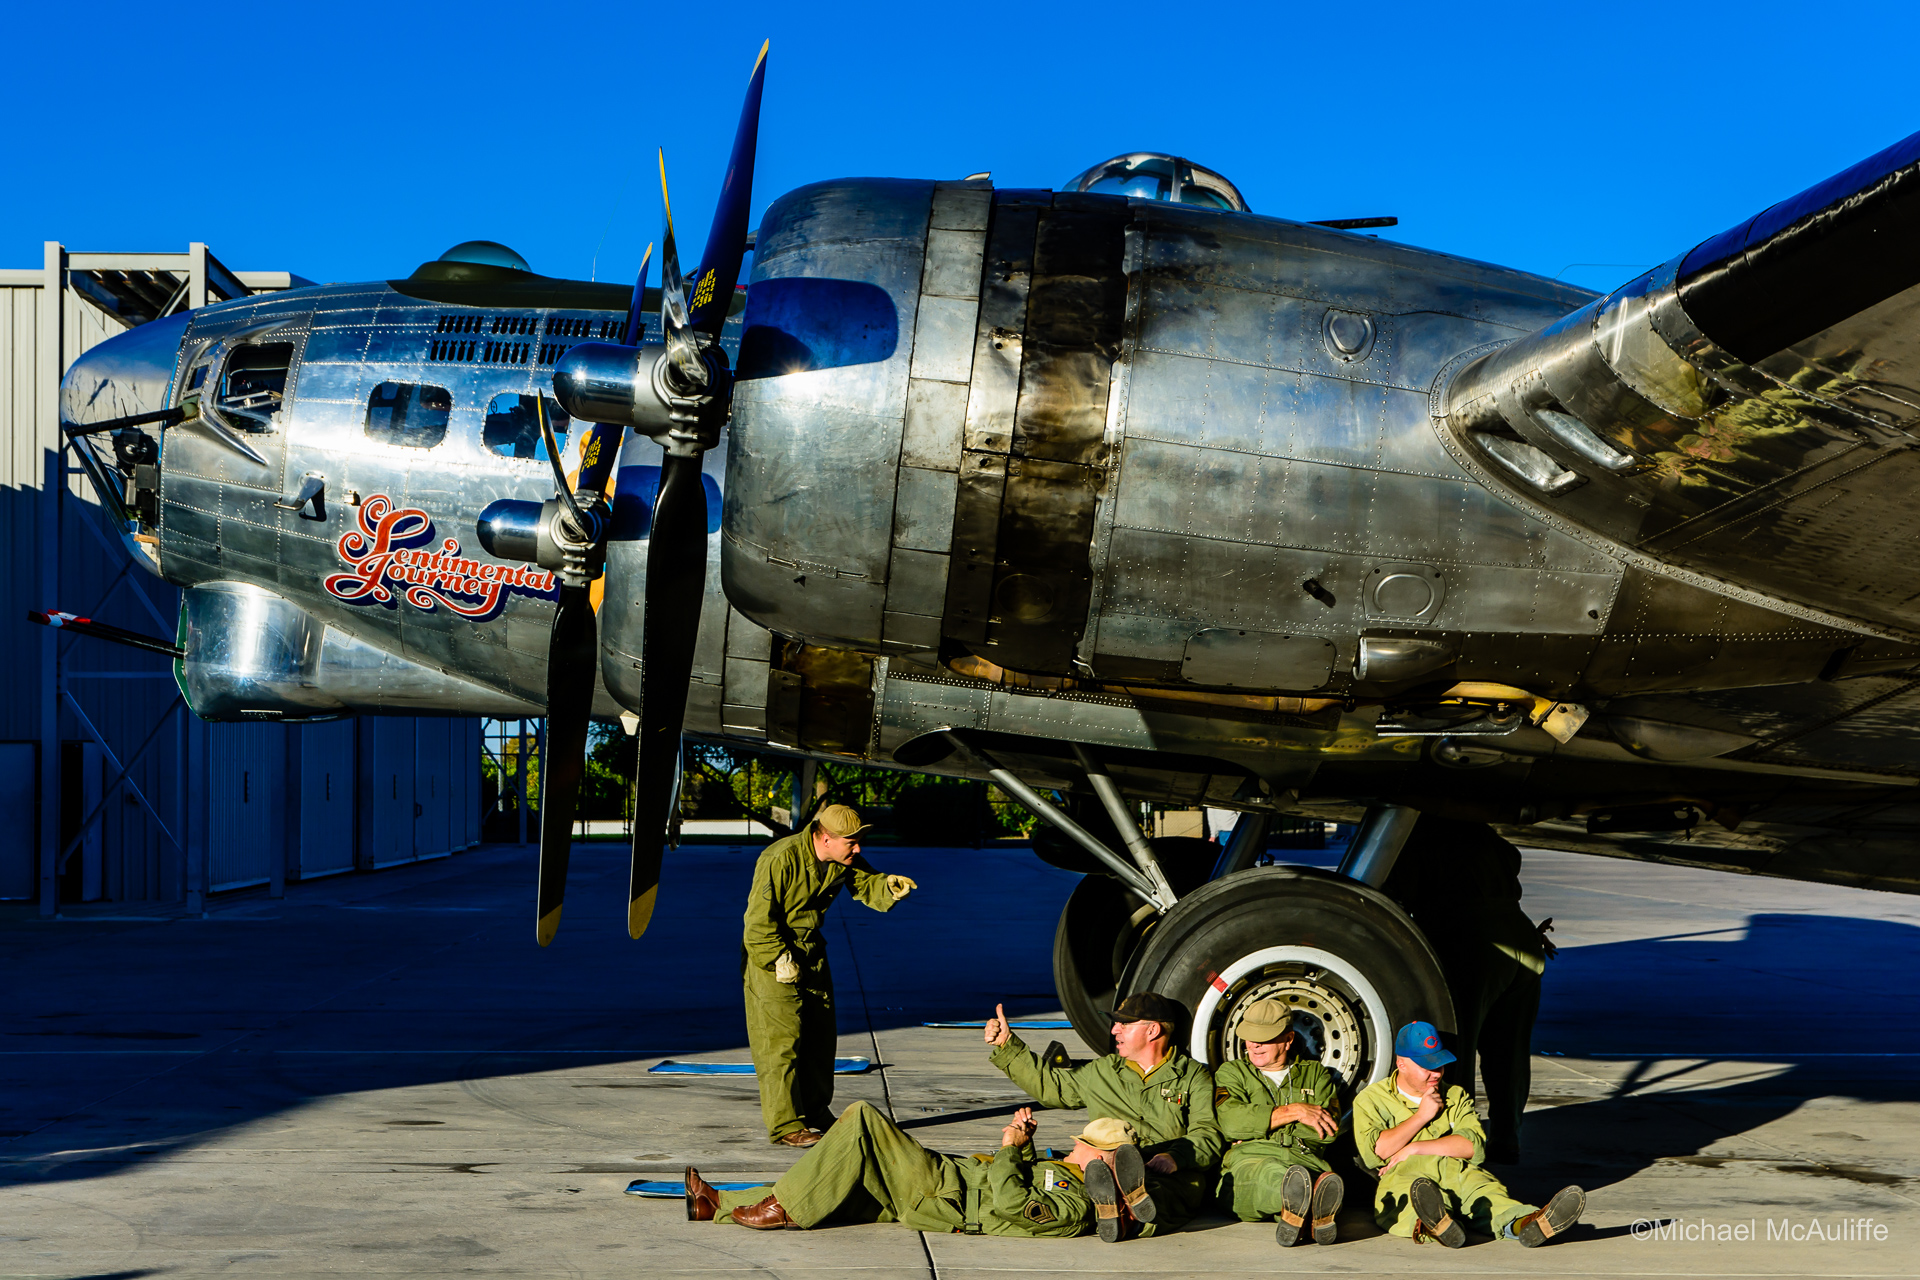 B-17G Sentimental Journey with Arizona Ground Crew Reenactors